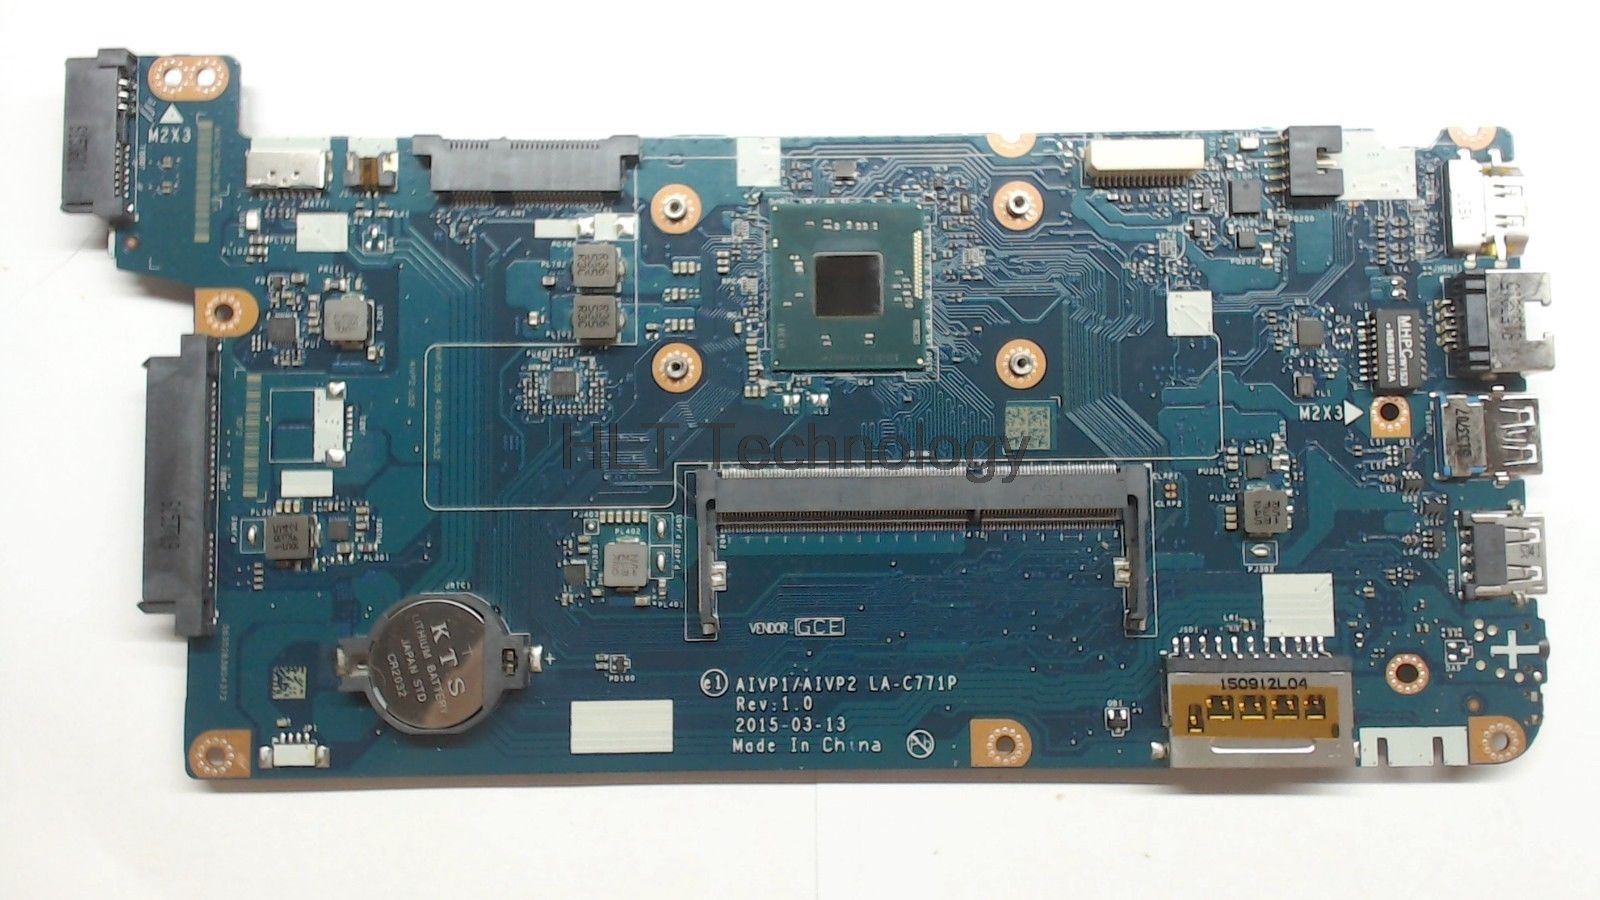 HOLYTIME Main board AIVP1 AIVP2 LA-C771P for Lenovo ideapad 100-15IBY Laptop motherboard SR1YJ N2840 CPU 100% full testedHOLYTIME Main board AIVP1 AIVP2 LA-C771P for Lenovo ideapad 100-15IBY Laptop motherboard SR1YJ N2840 CPU 100% full tested